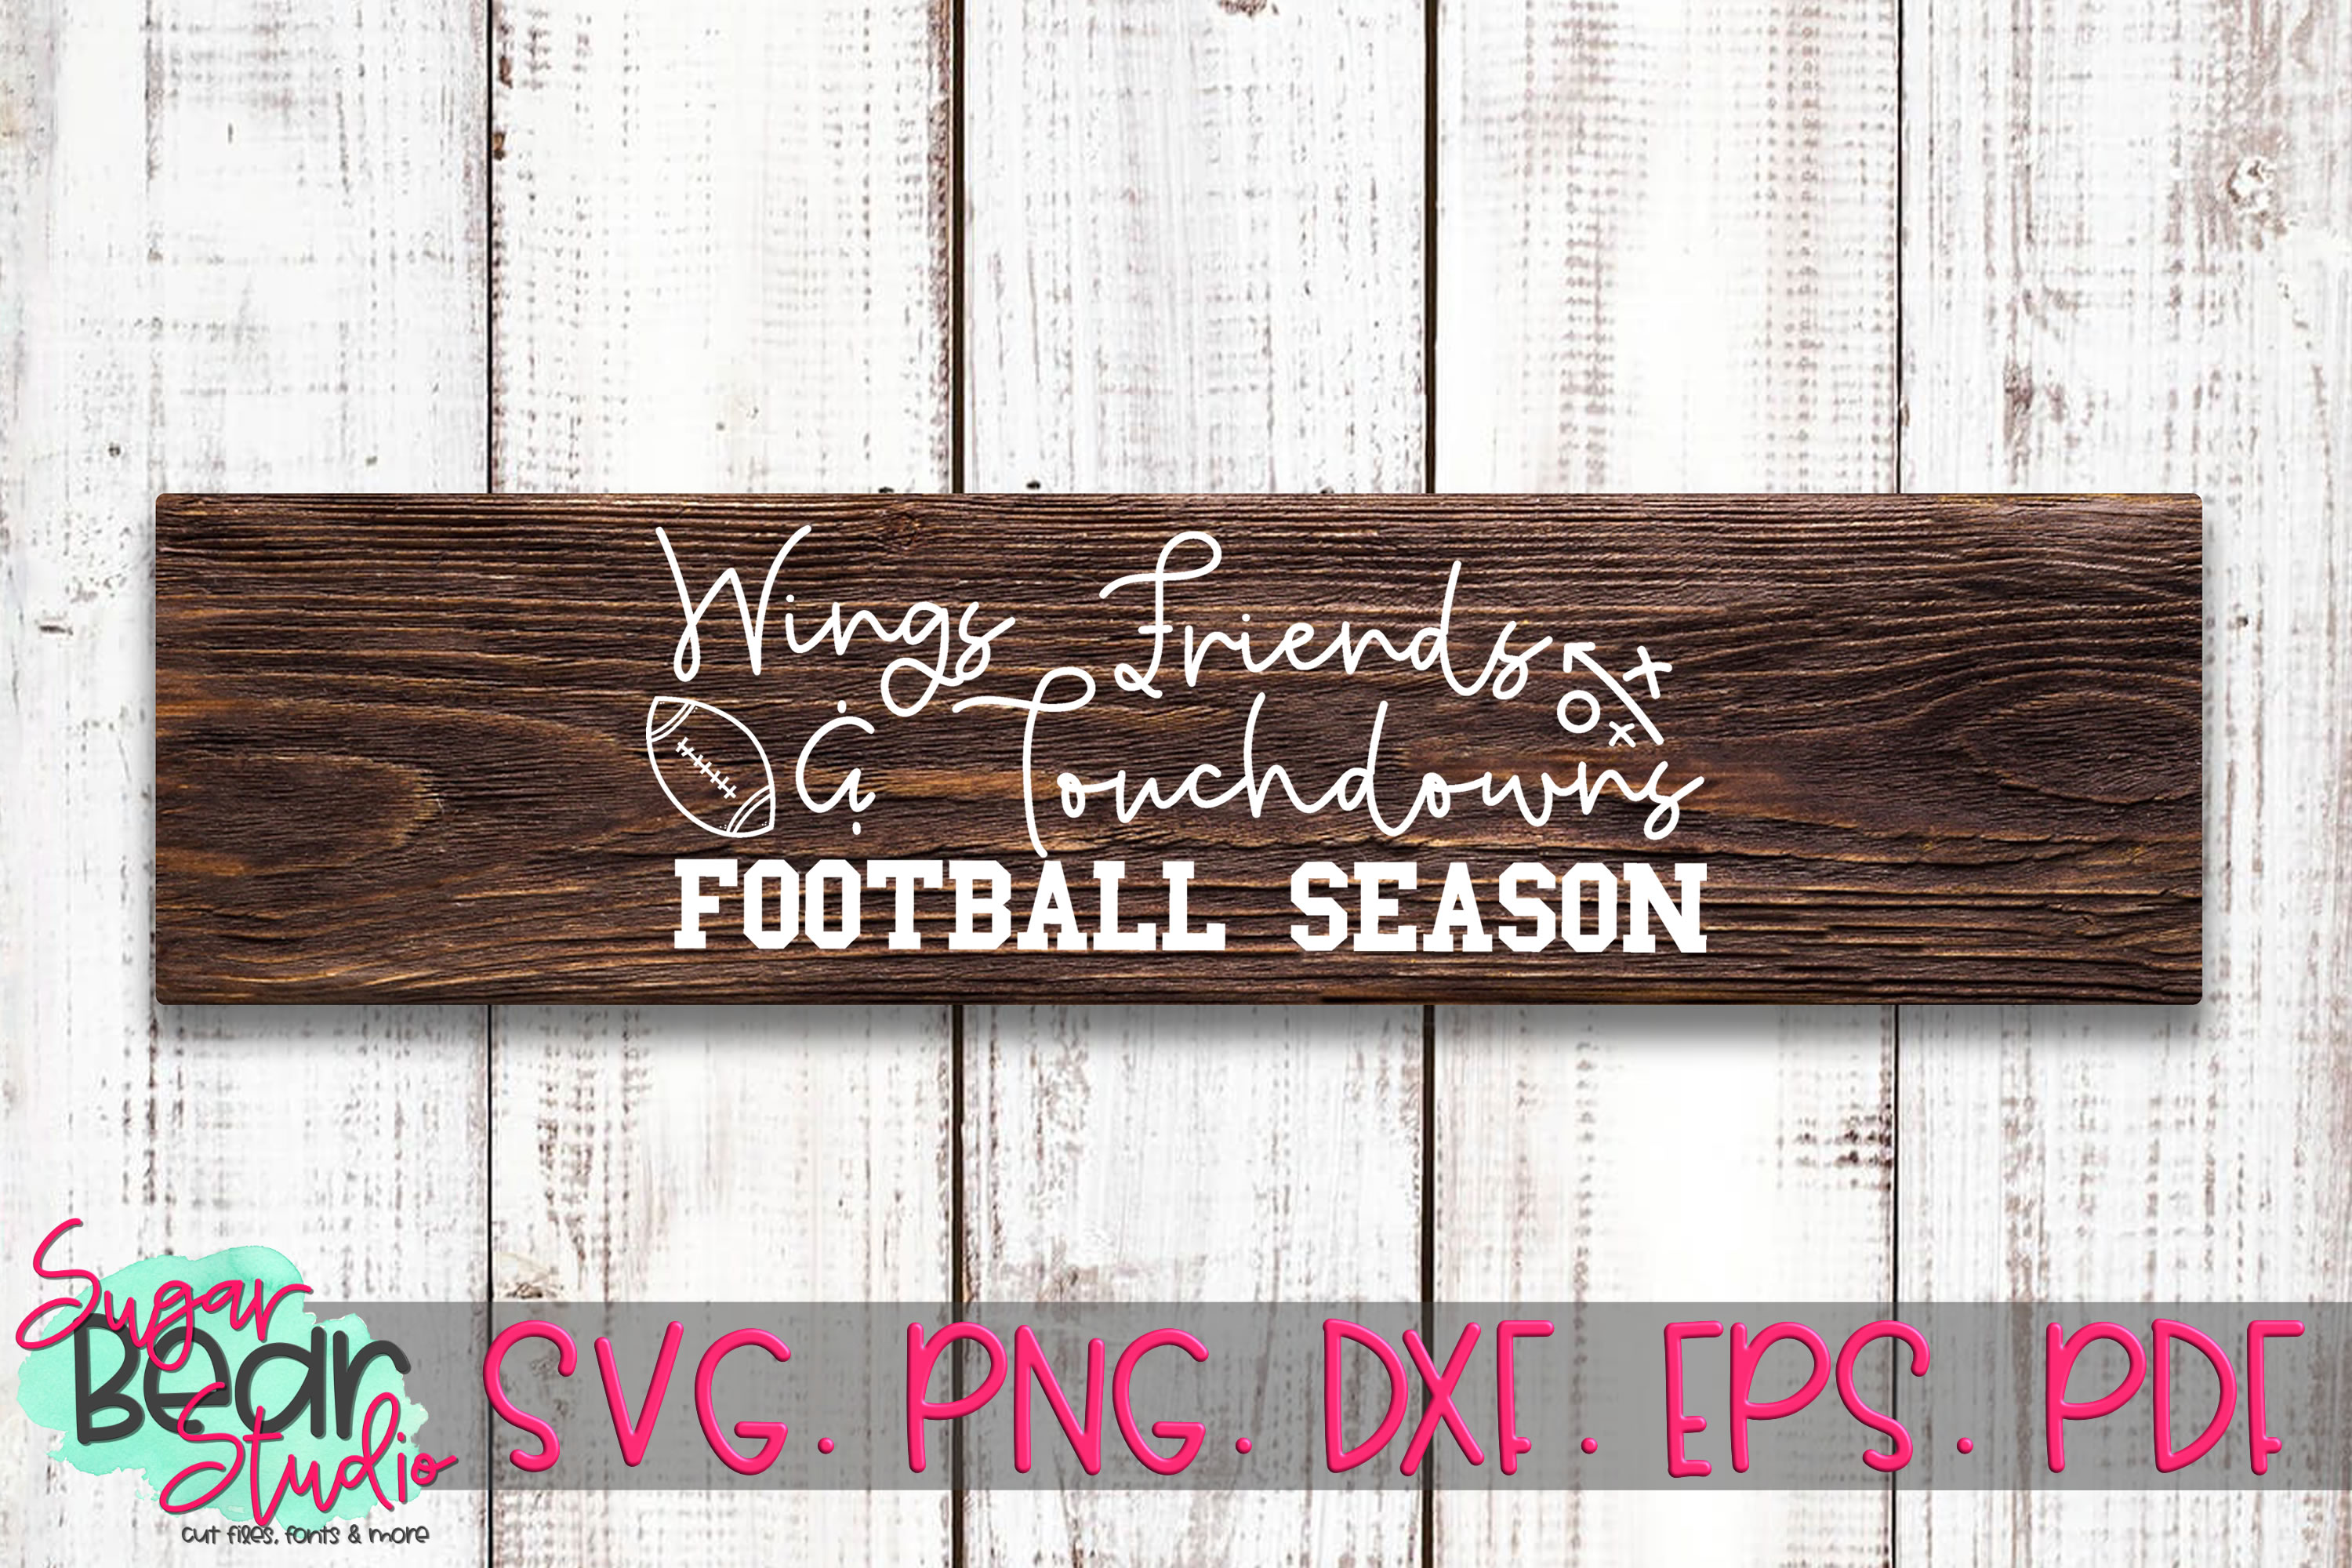 Wings Friends & Touchdowns Football Season - A Football SVG example image 2